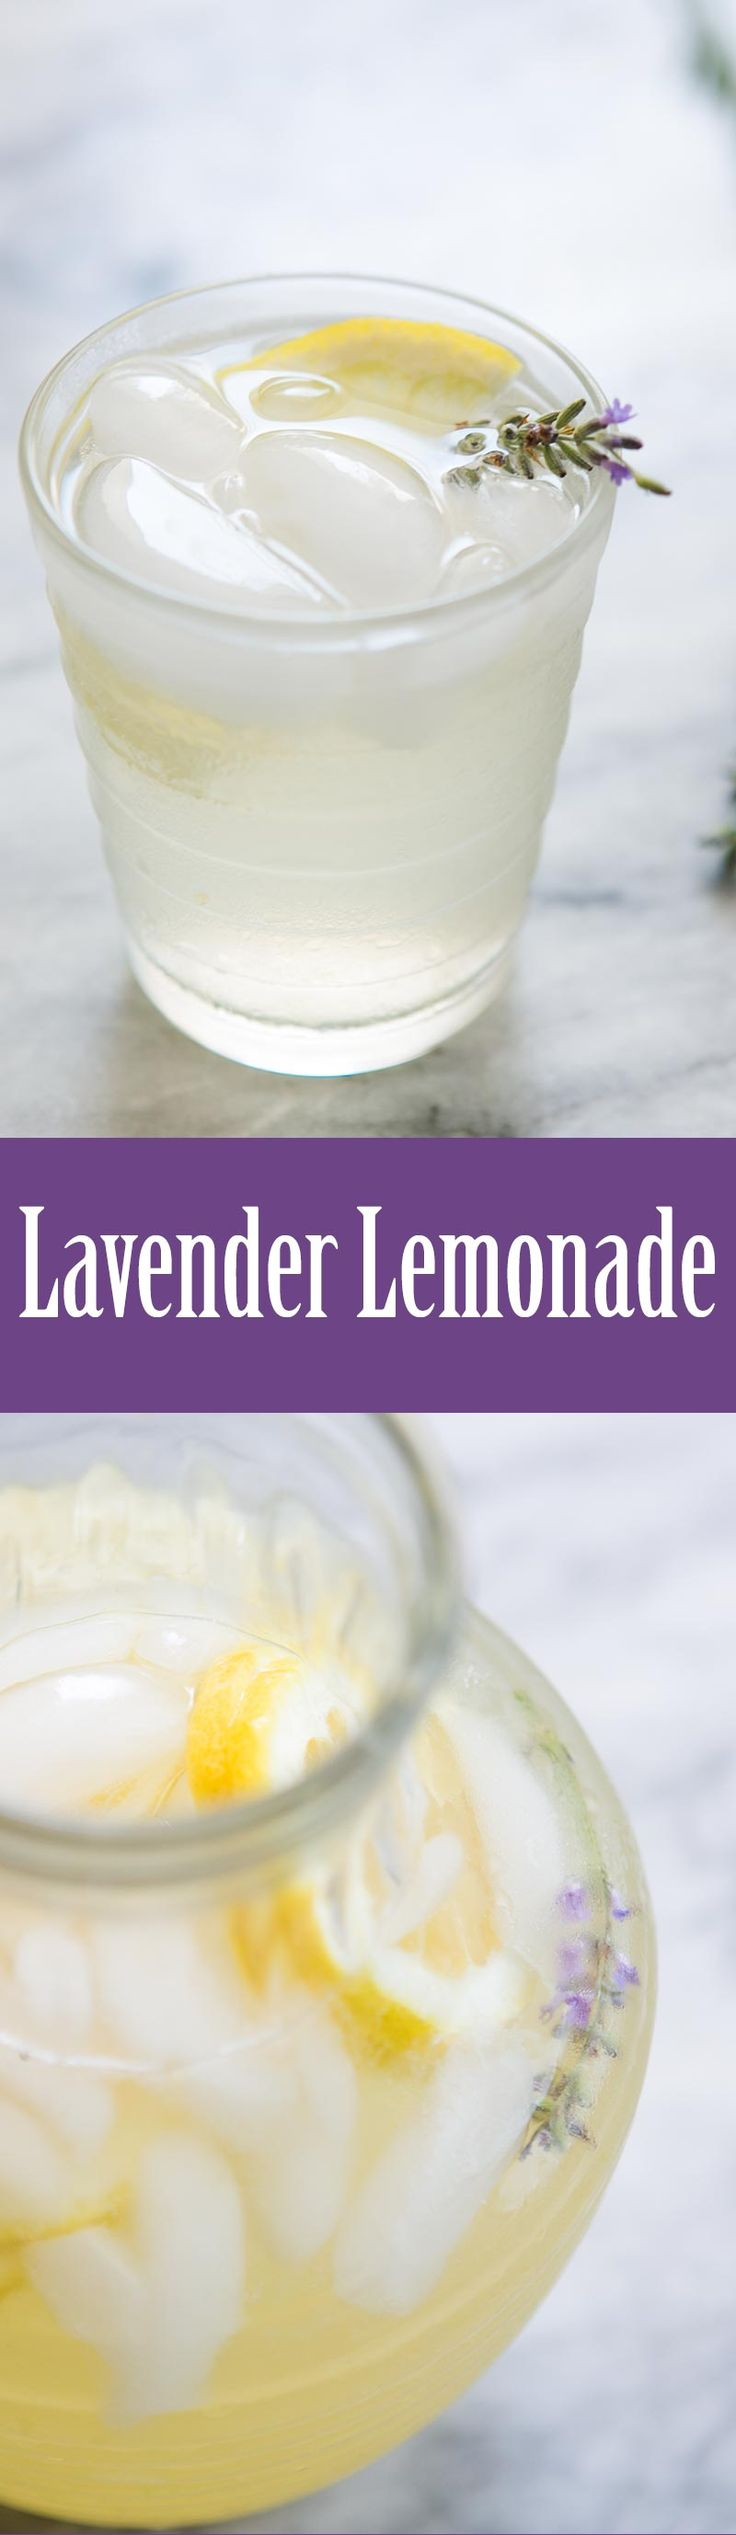 make drinks party drinks lavender lemonade homemade lemonade veggie ...